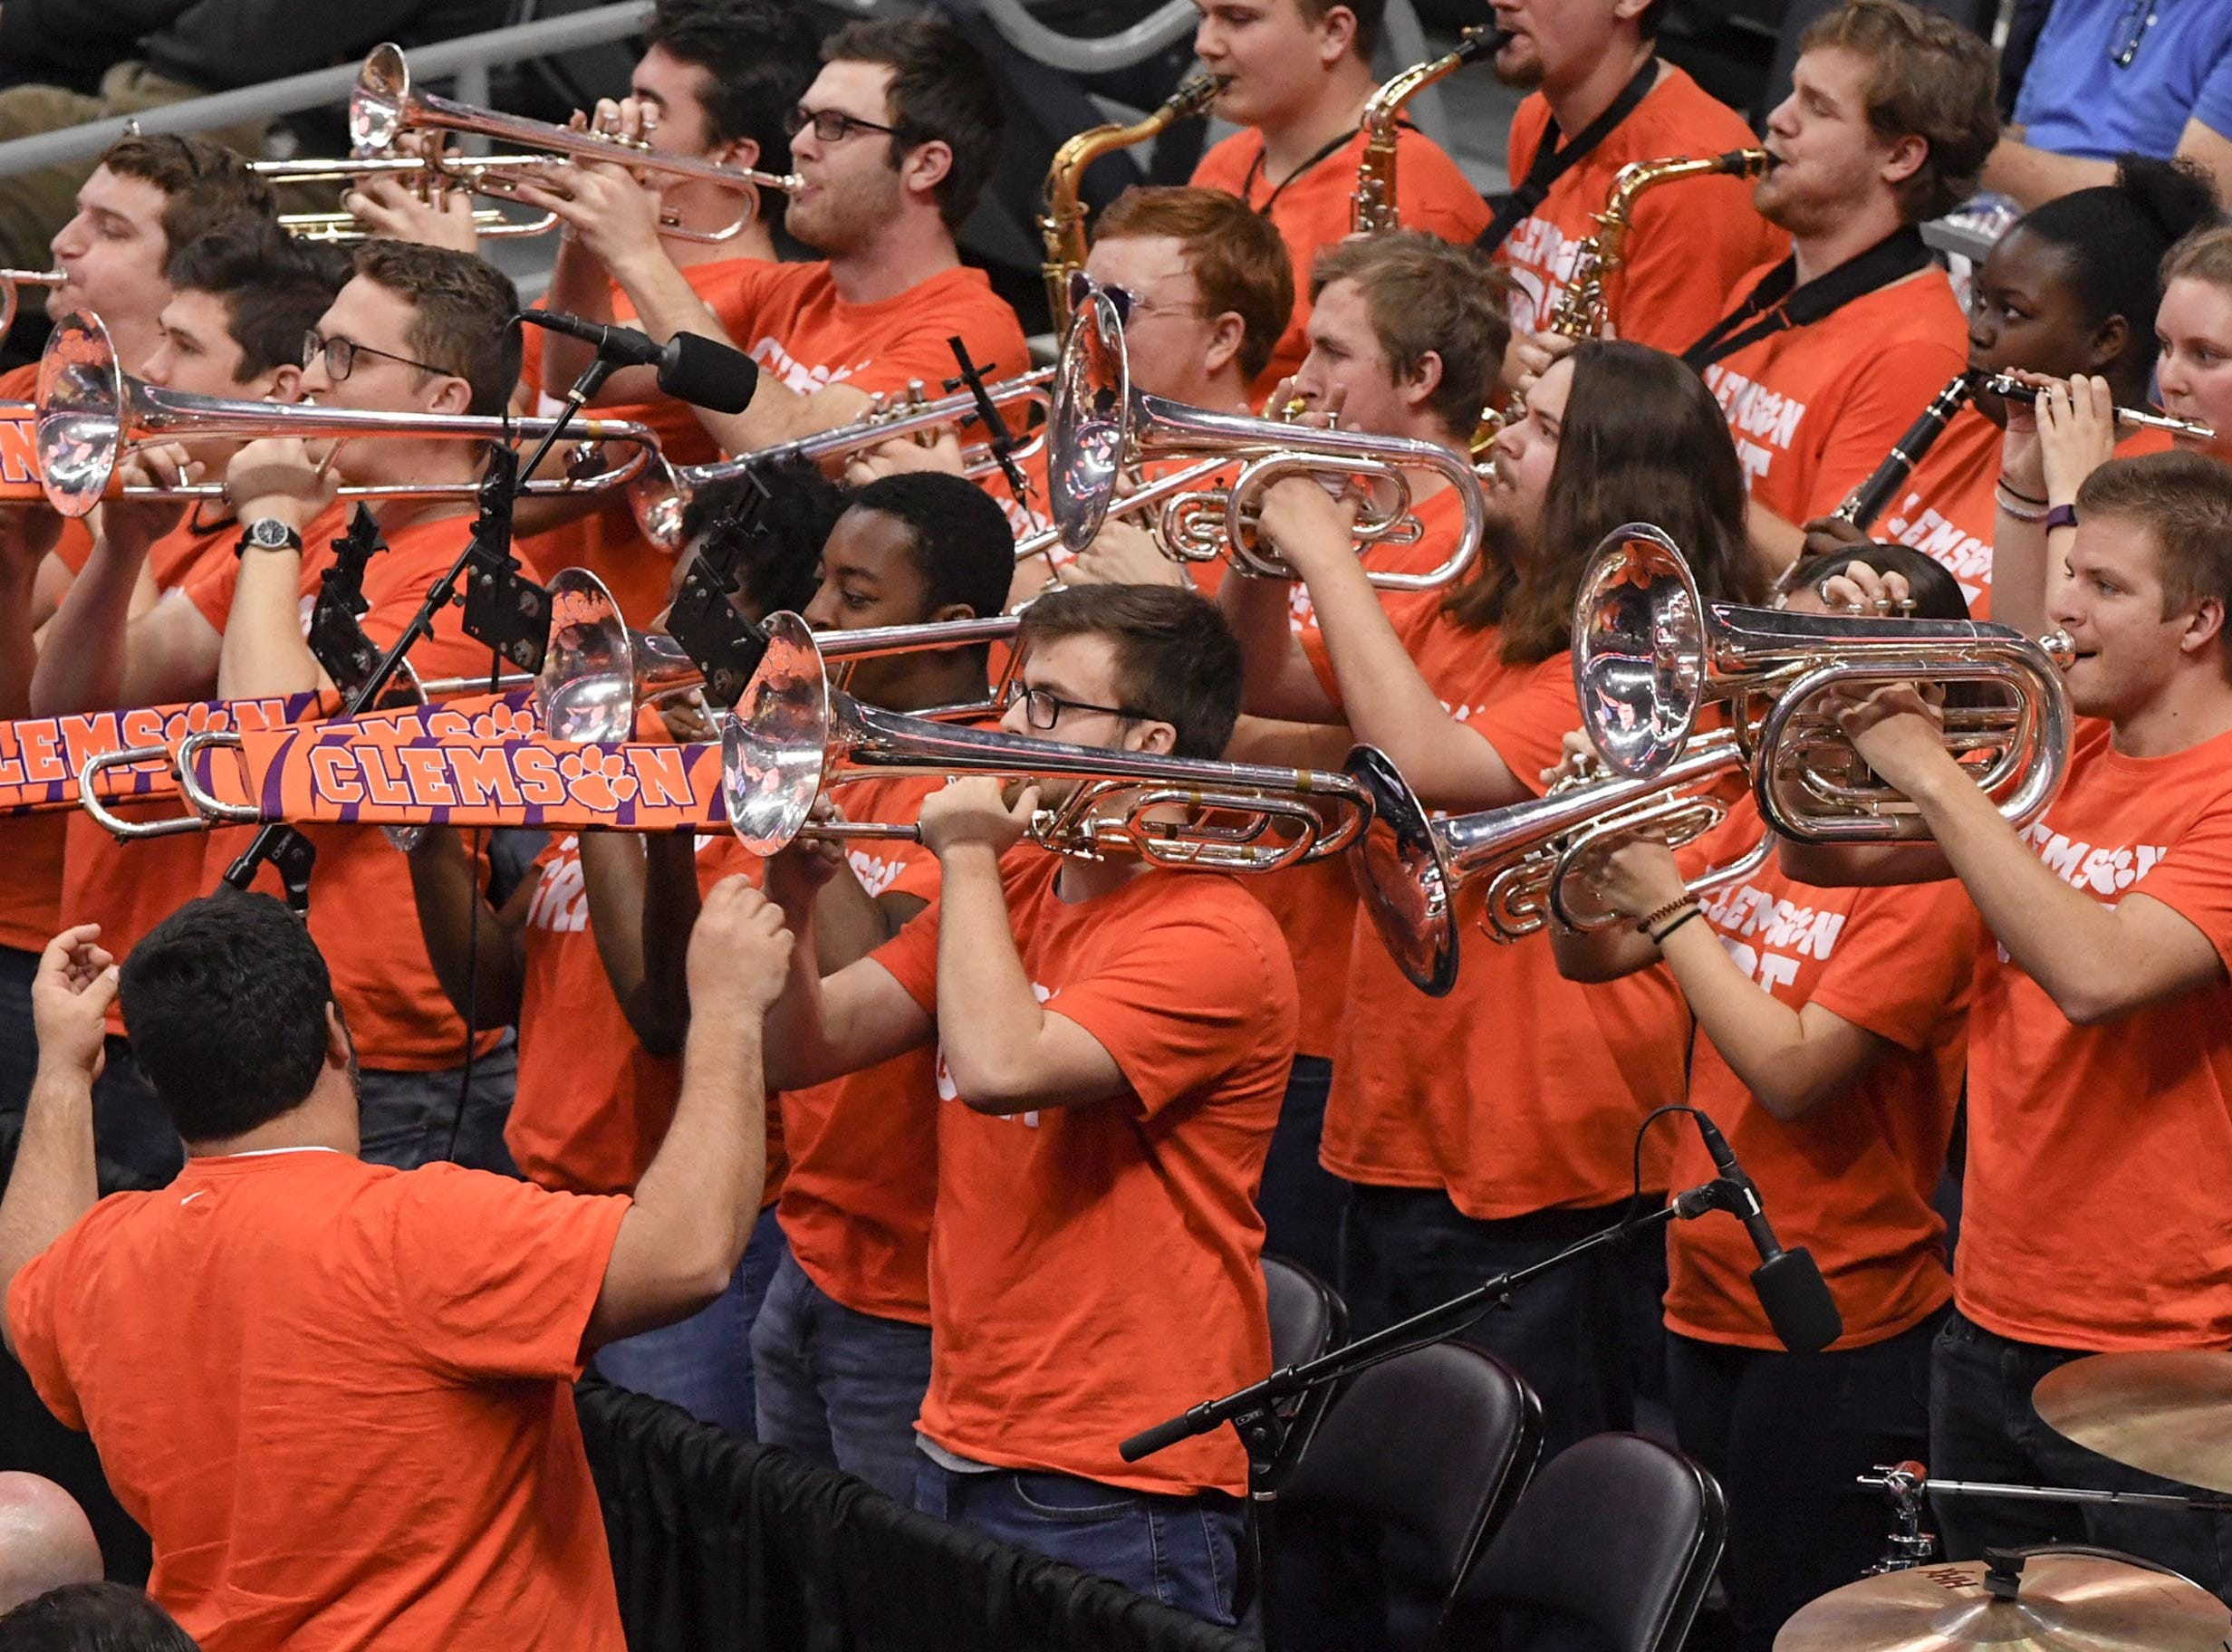 Clemson band plays during the second half at the Spectrum Center in Charlotte, N.C. Tuesday, March 12, 2019.